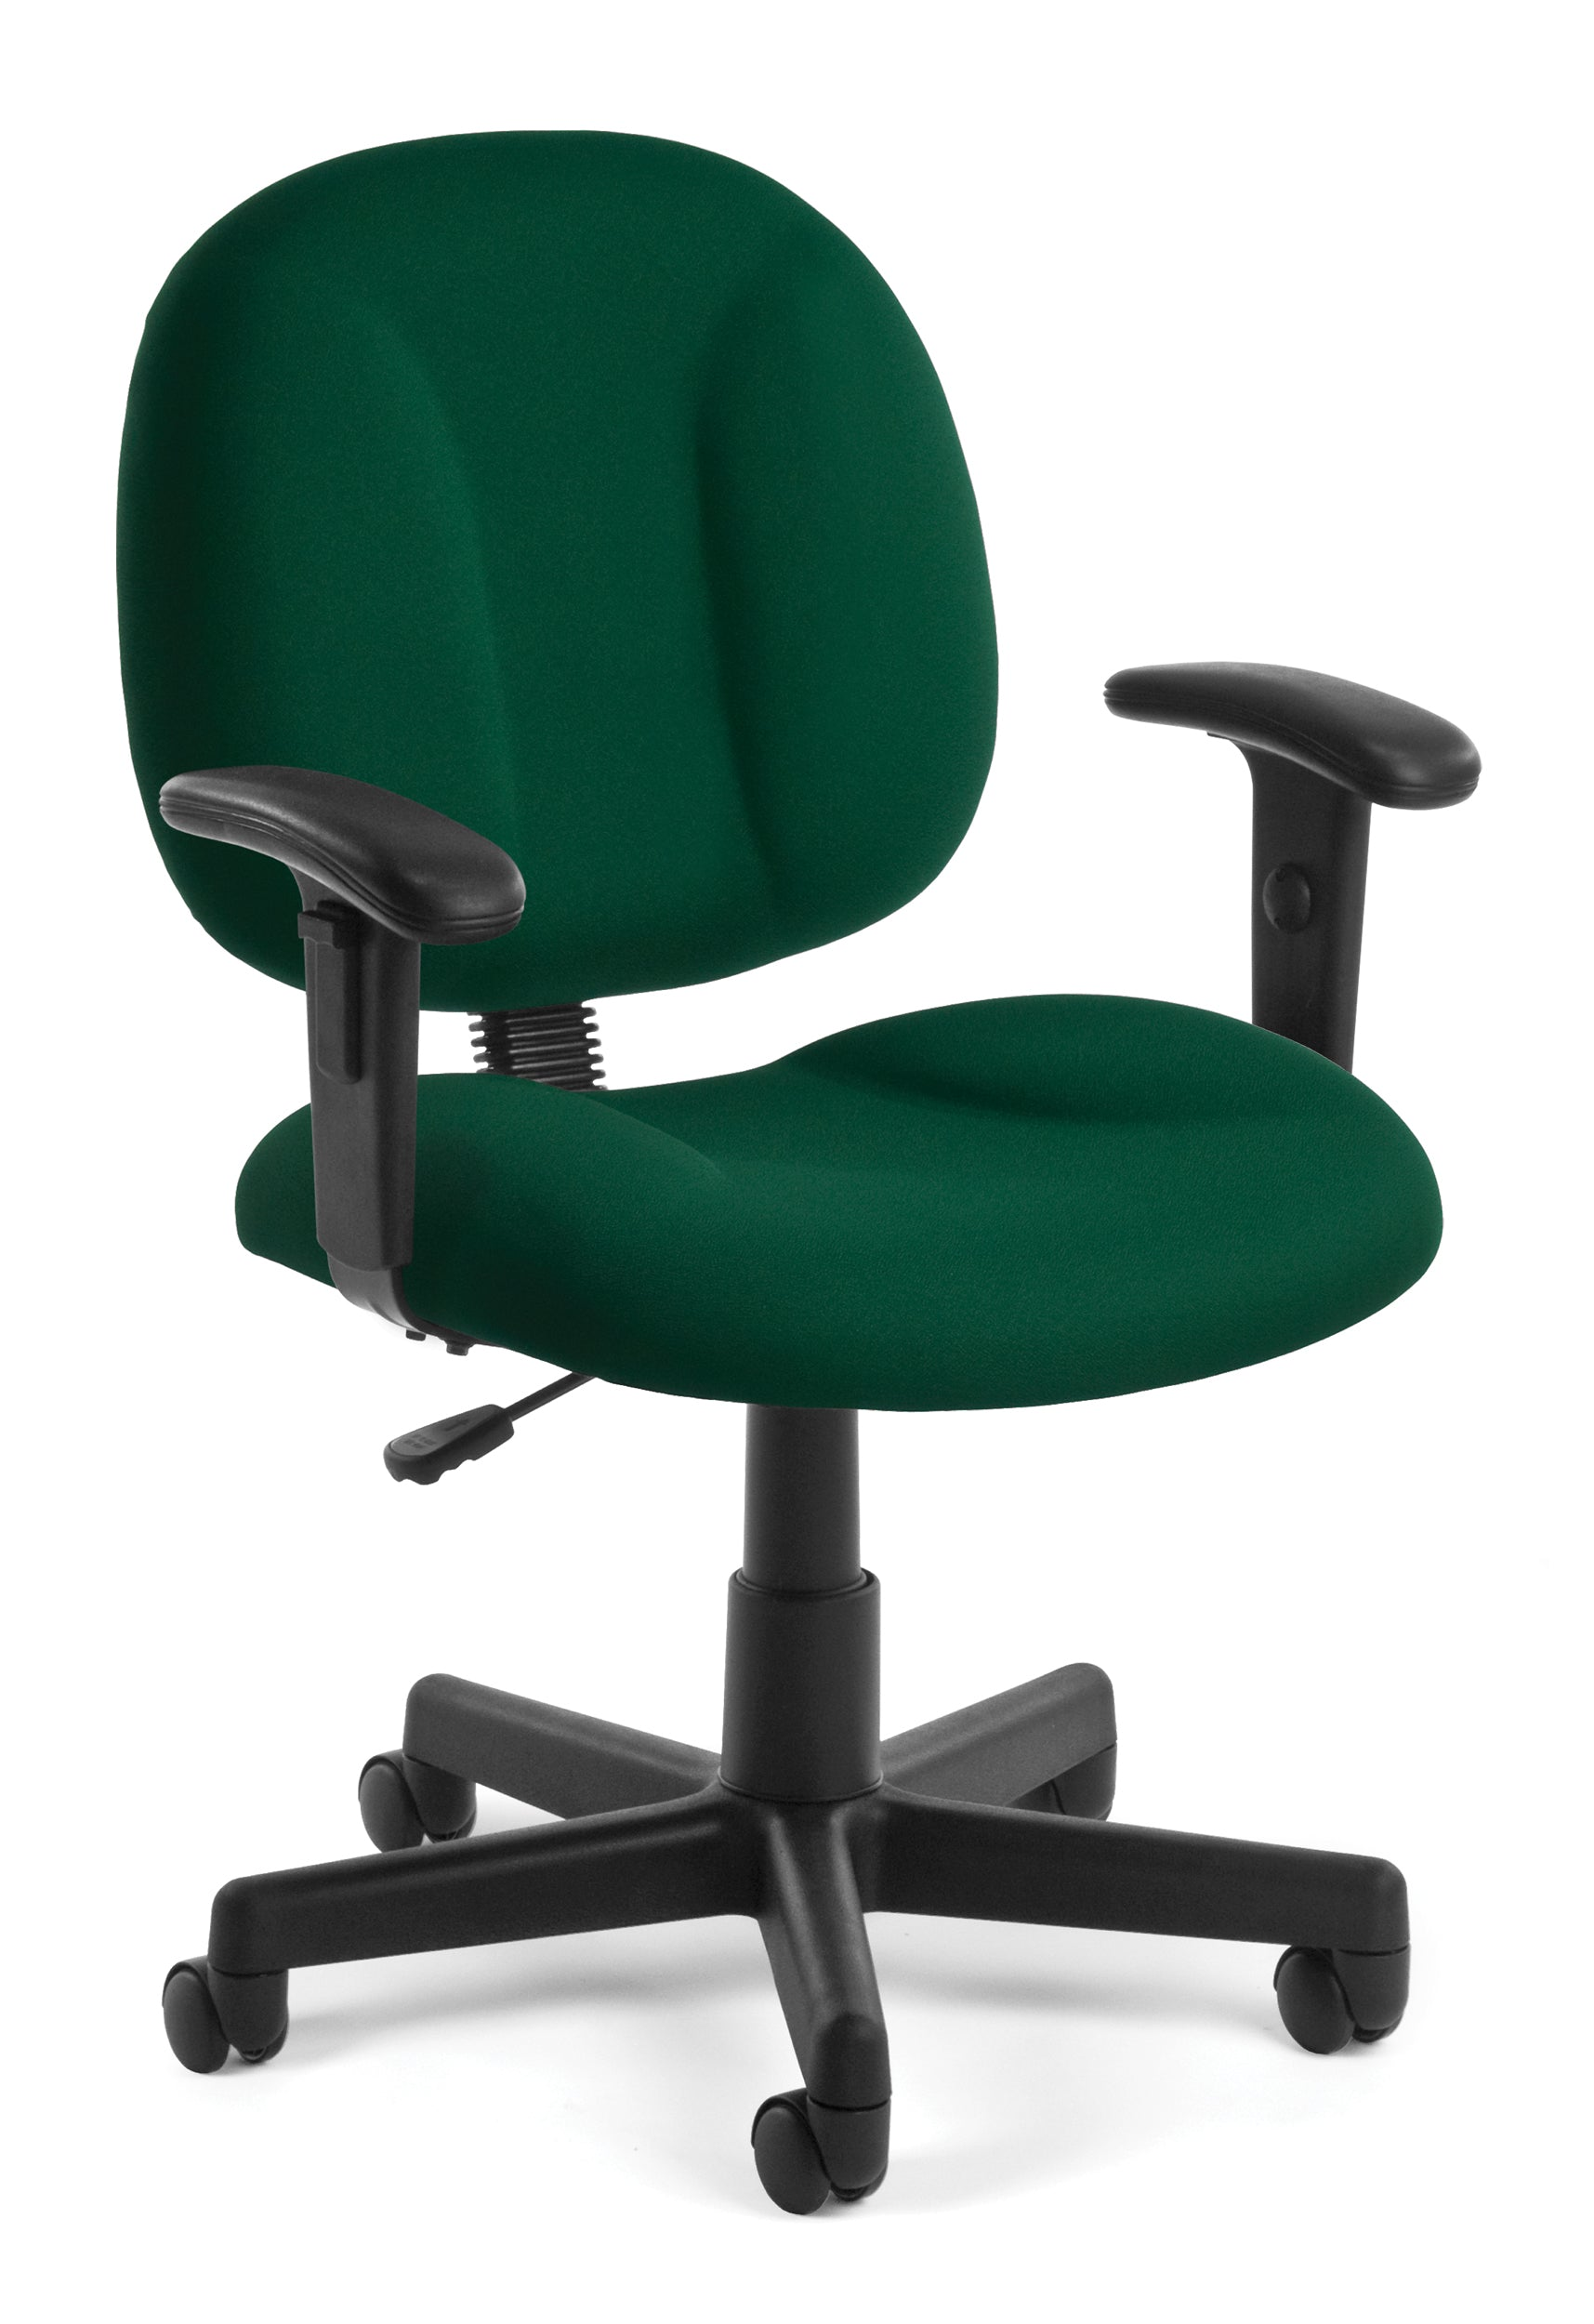 Ofminc Model 105-AA Comfort Series Fabric Task Arms SuperChair